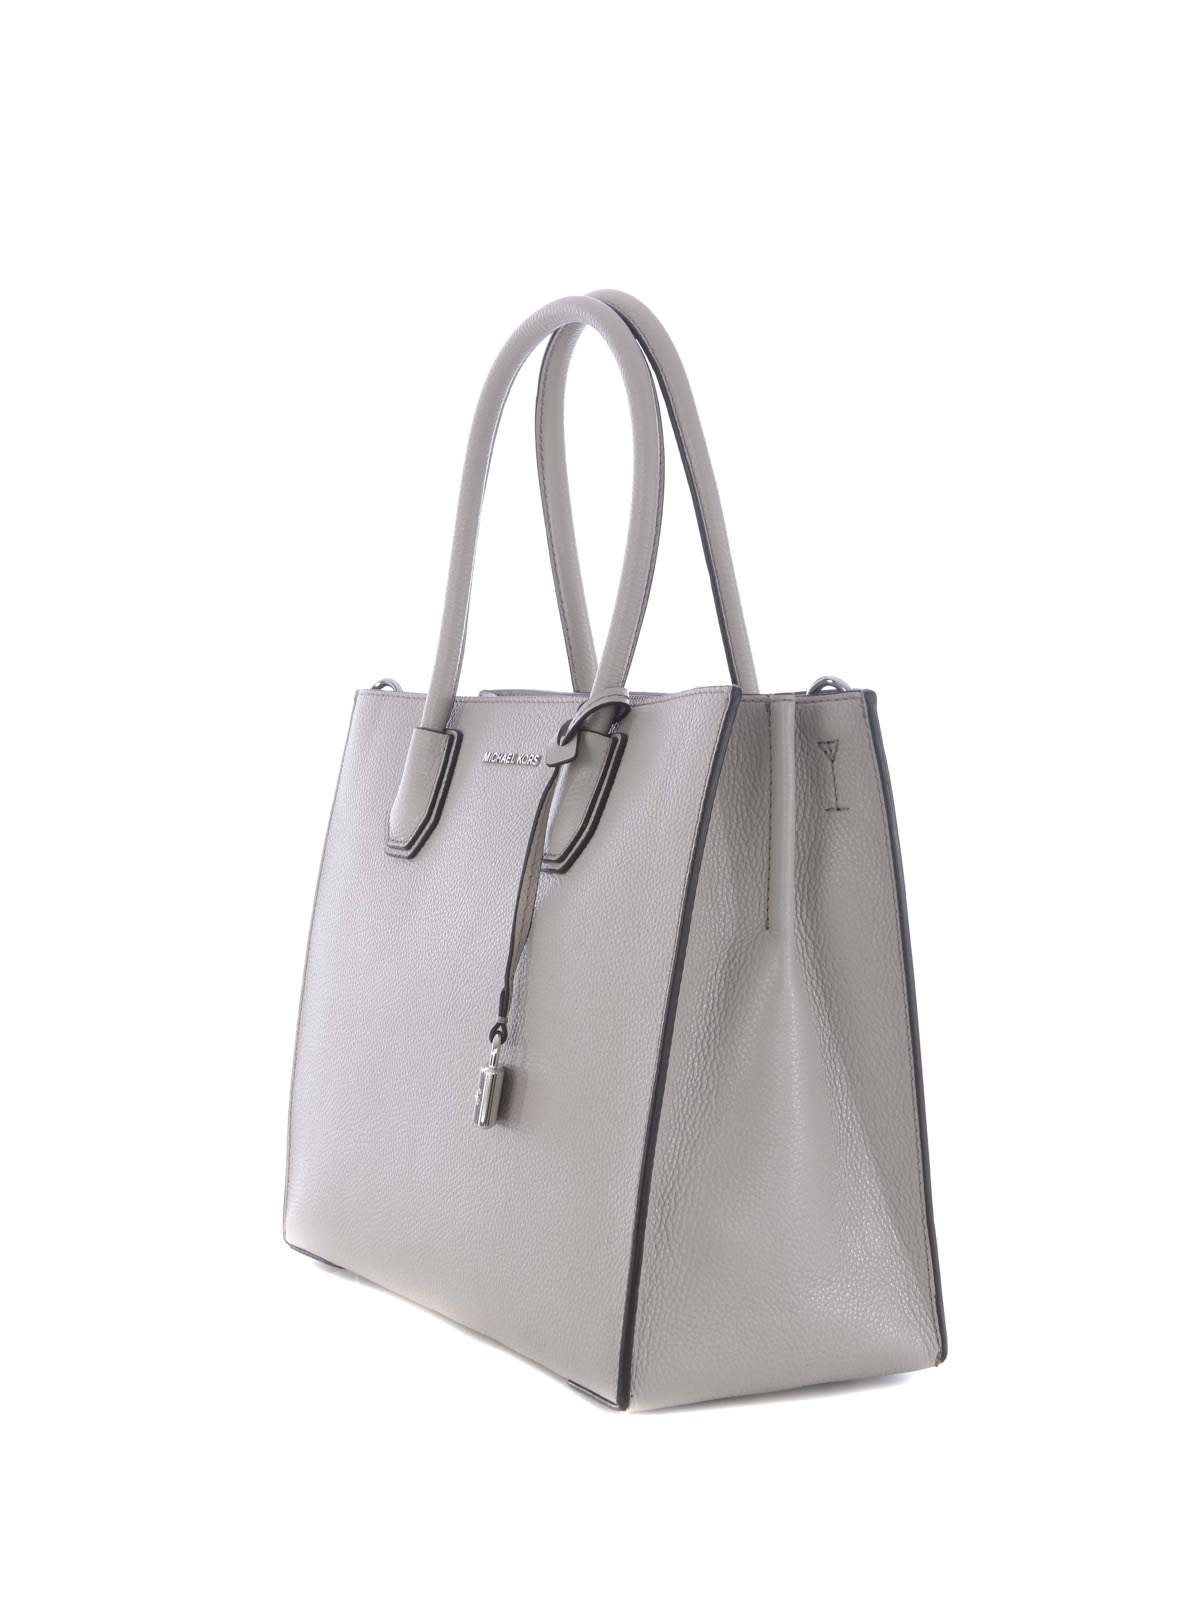 a33c9eac5934f8 MICHAEL KORS: totes bags online - Mercer large cement leather tote